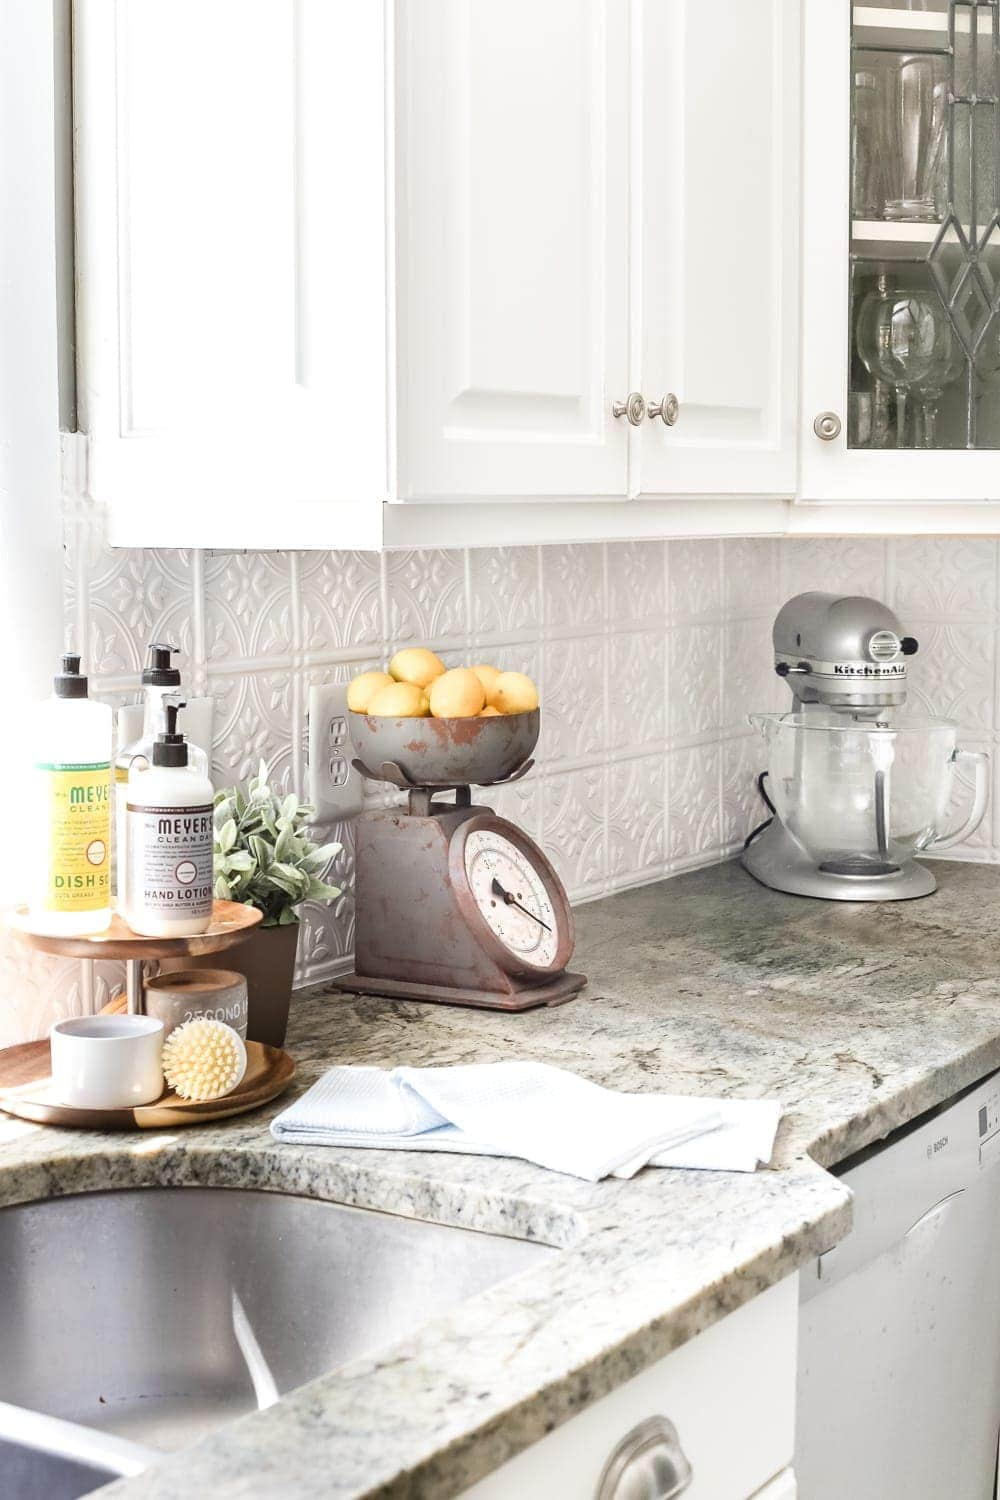 tin kitchen backsplash bar chairs diy pressed bless er house blesserhouse com how to makeover a